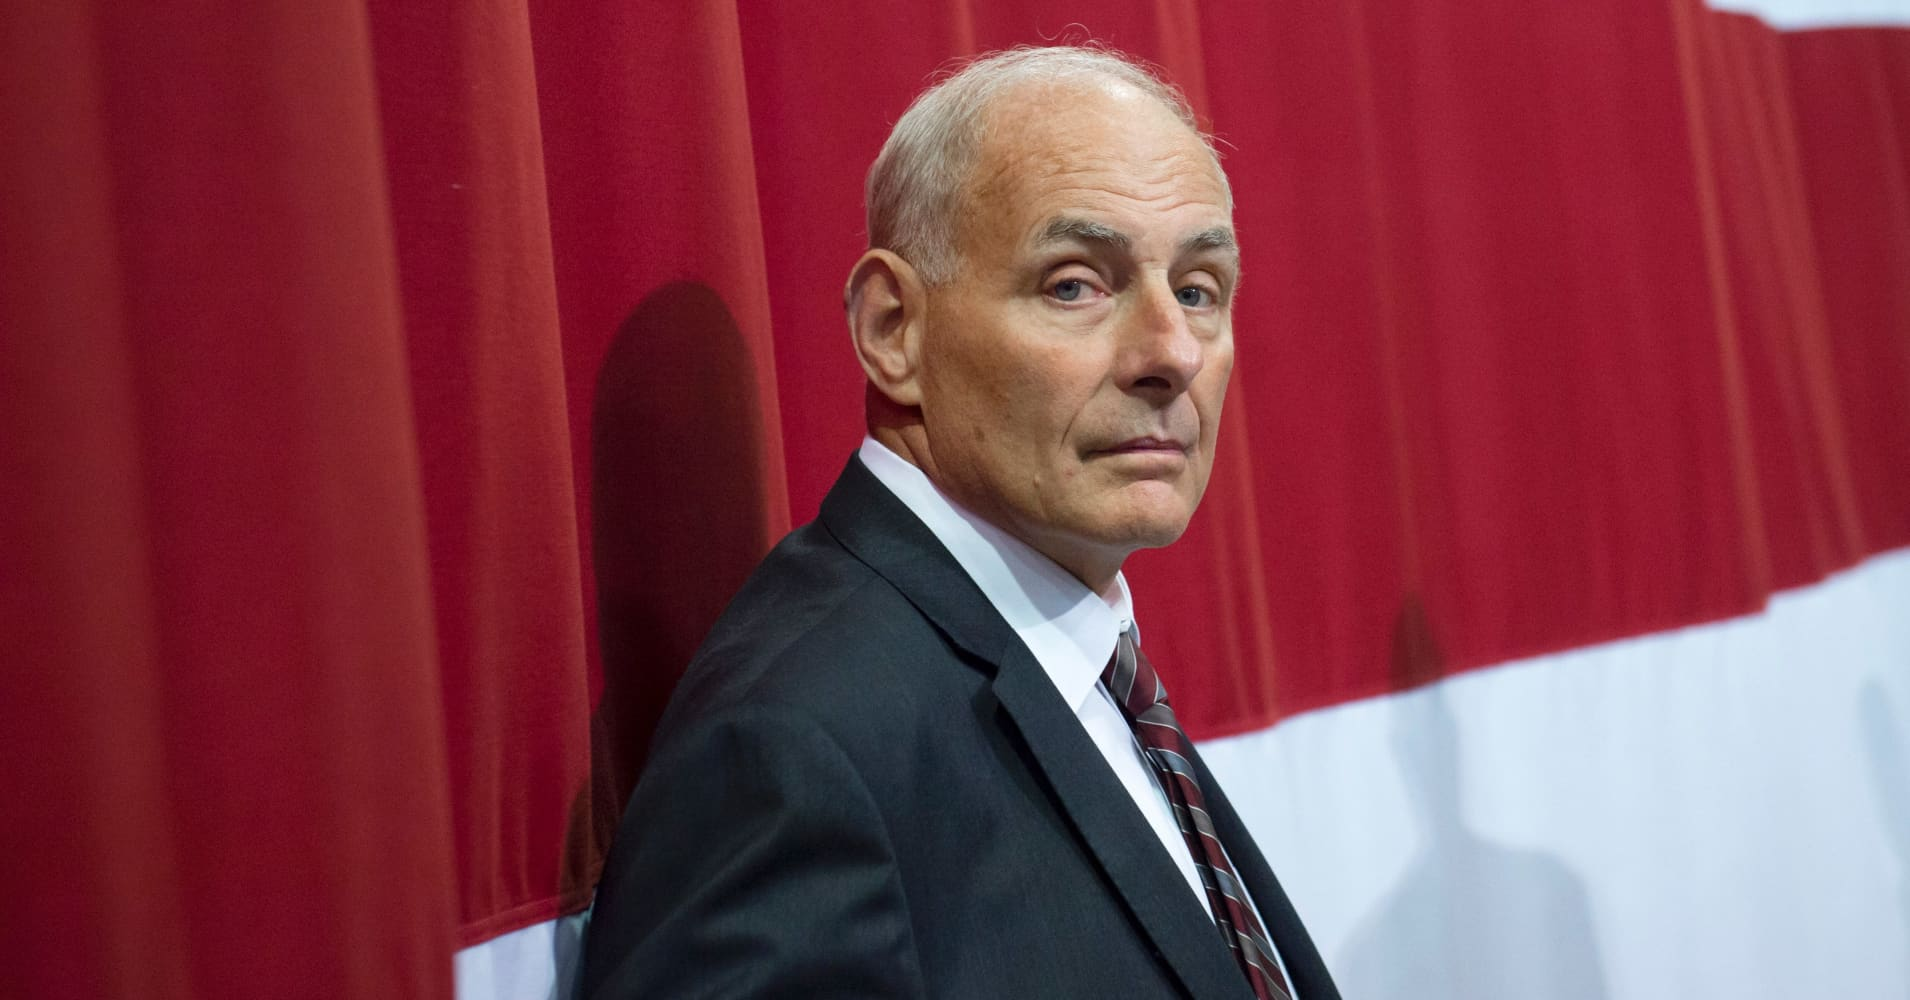 John Kelly will depart White House by year's end, ending fractious tenure as chief of staff